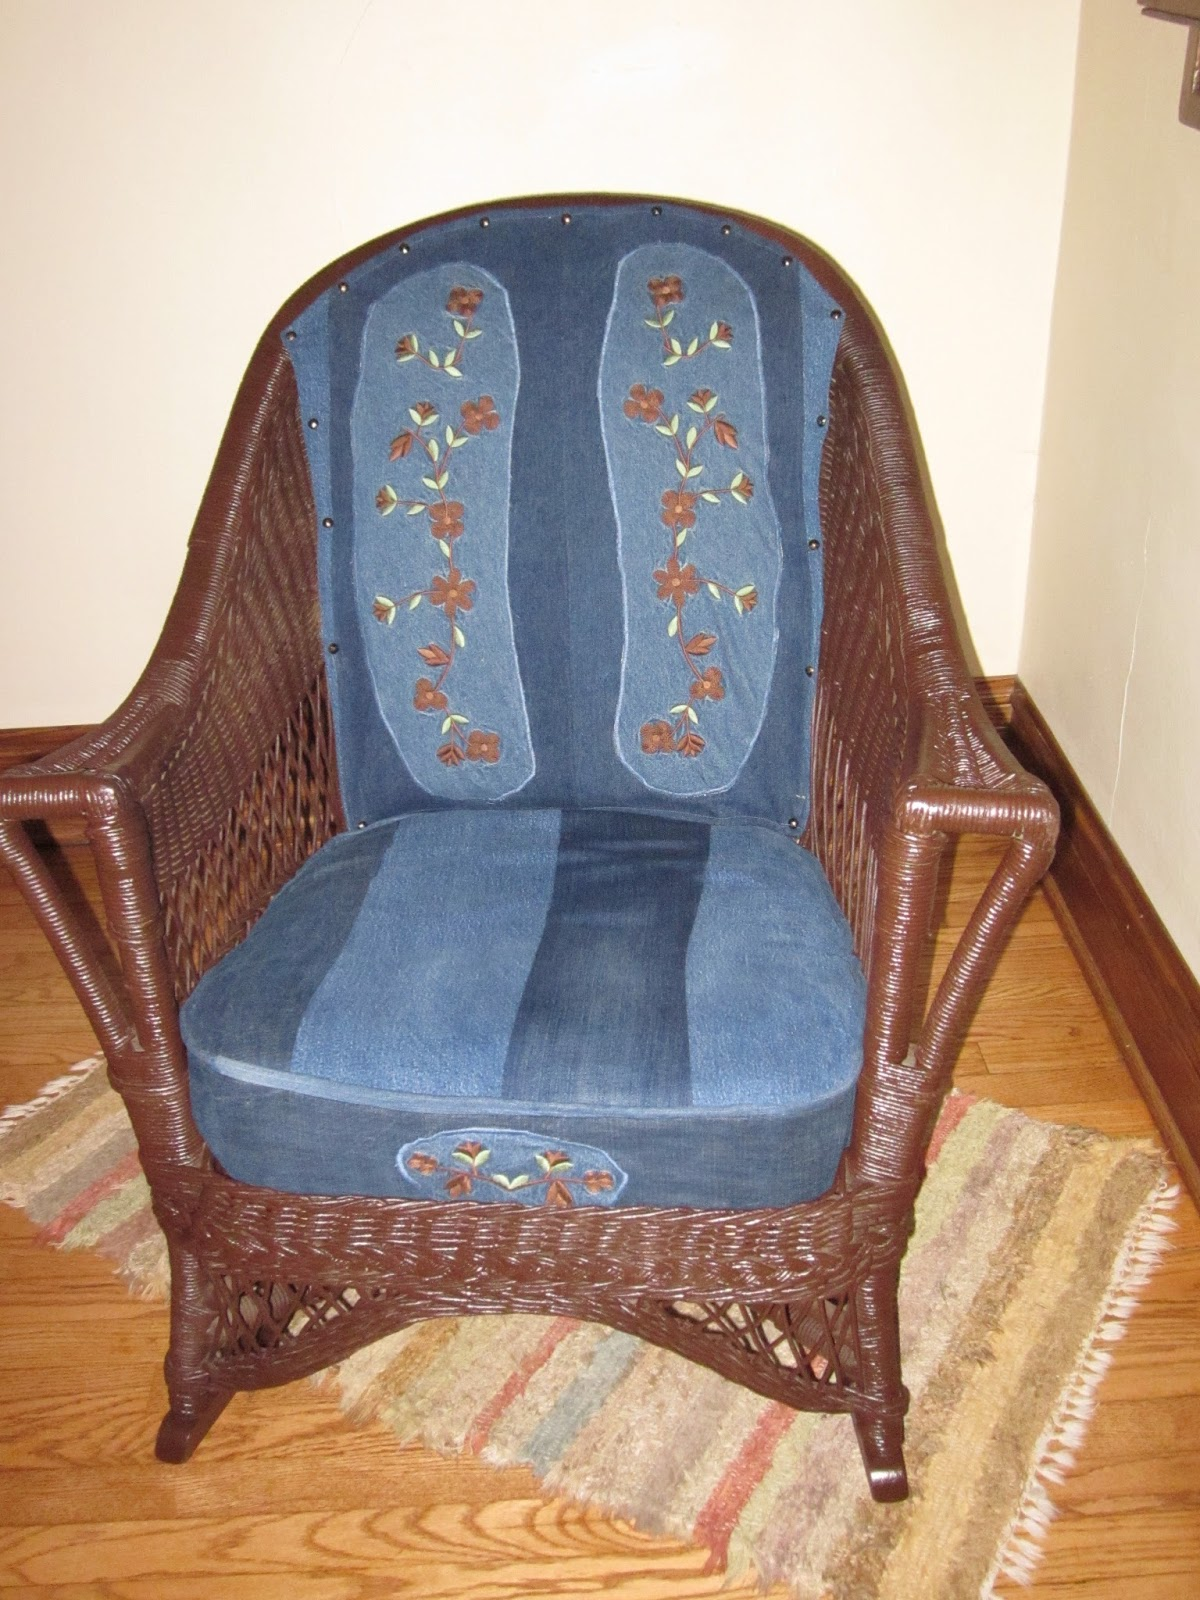 Denim Chairs Blue Janes Bags Reupholstered Chair Using Recycled Denim